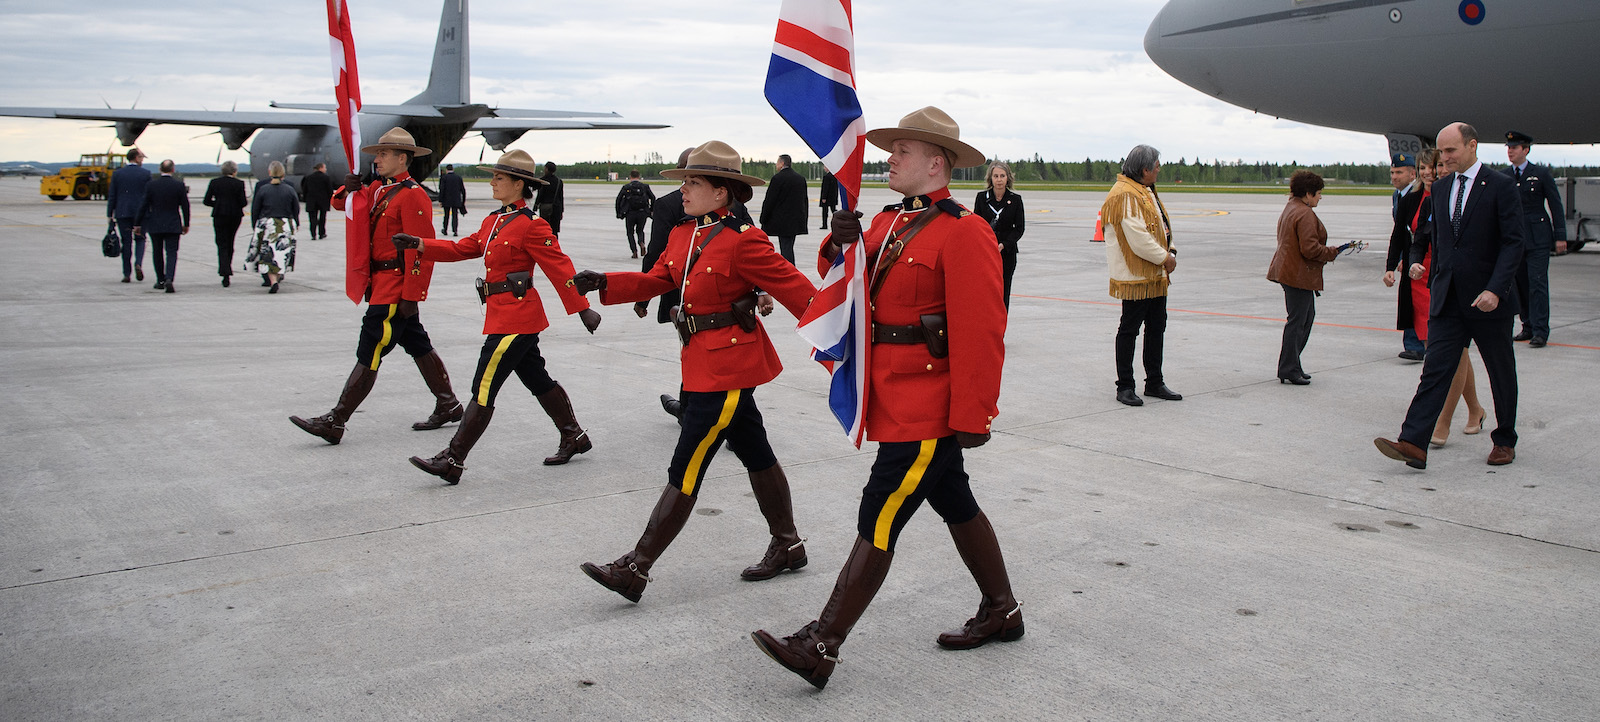 Canadian mounted police carry the Union and Canadian flags ahead of the G7 Summit in Saguenay, Canada (Photo: Leon Neal/Getty)